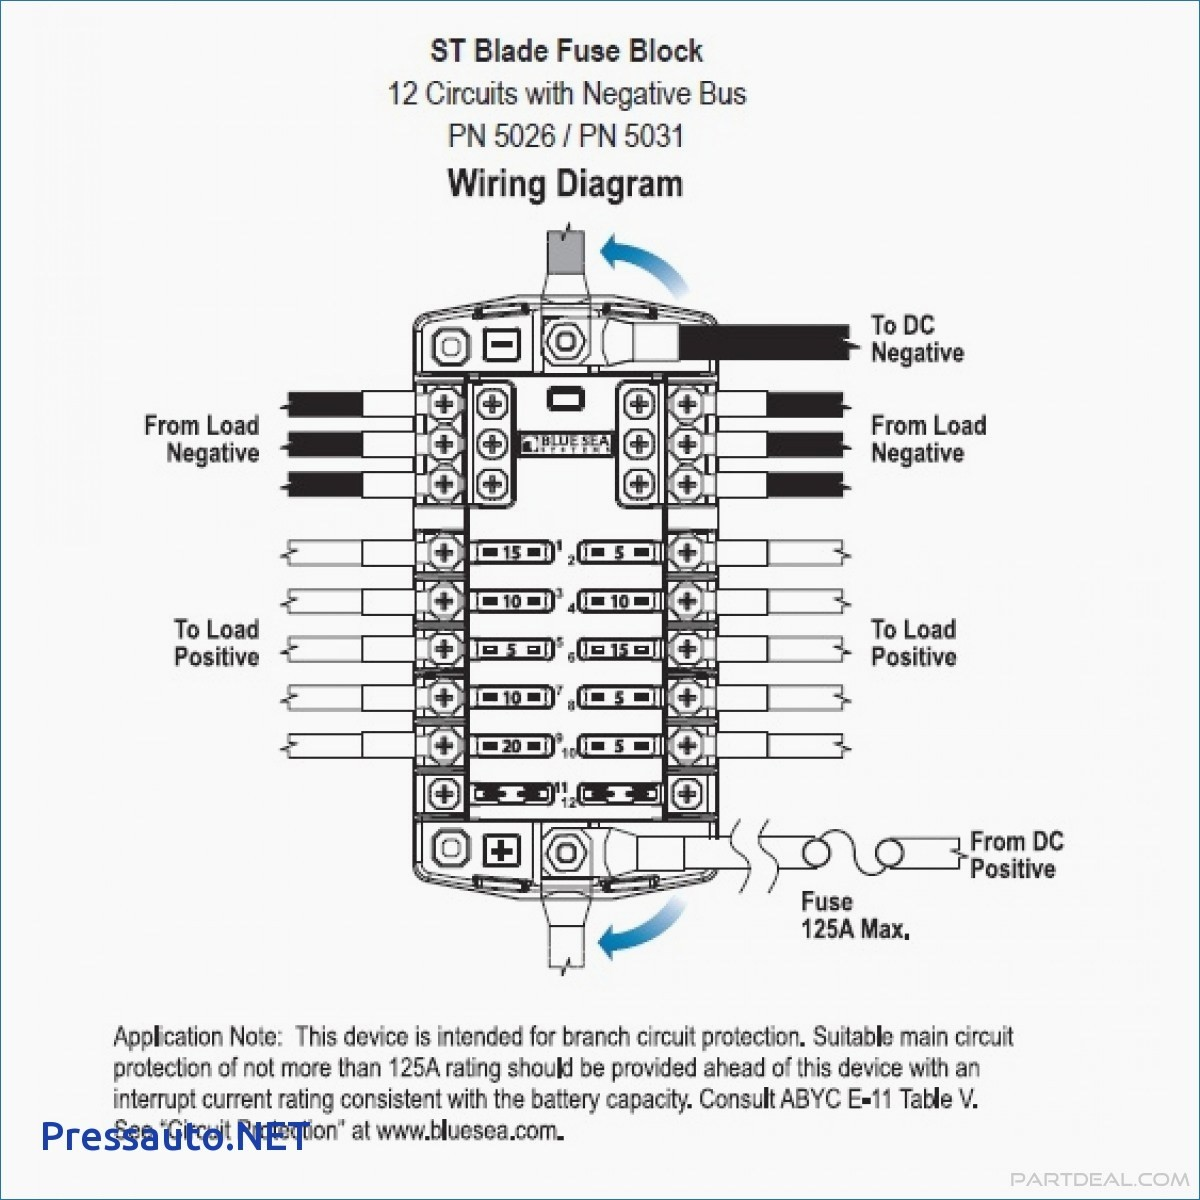 dc fuse block wiring diagram